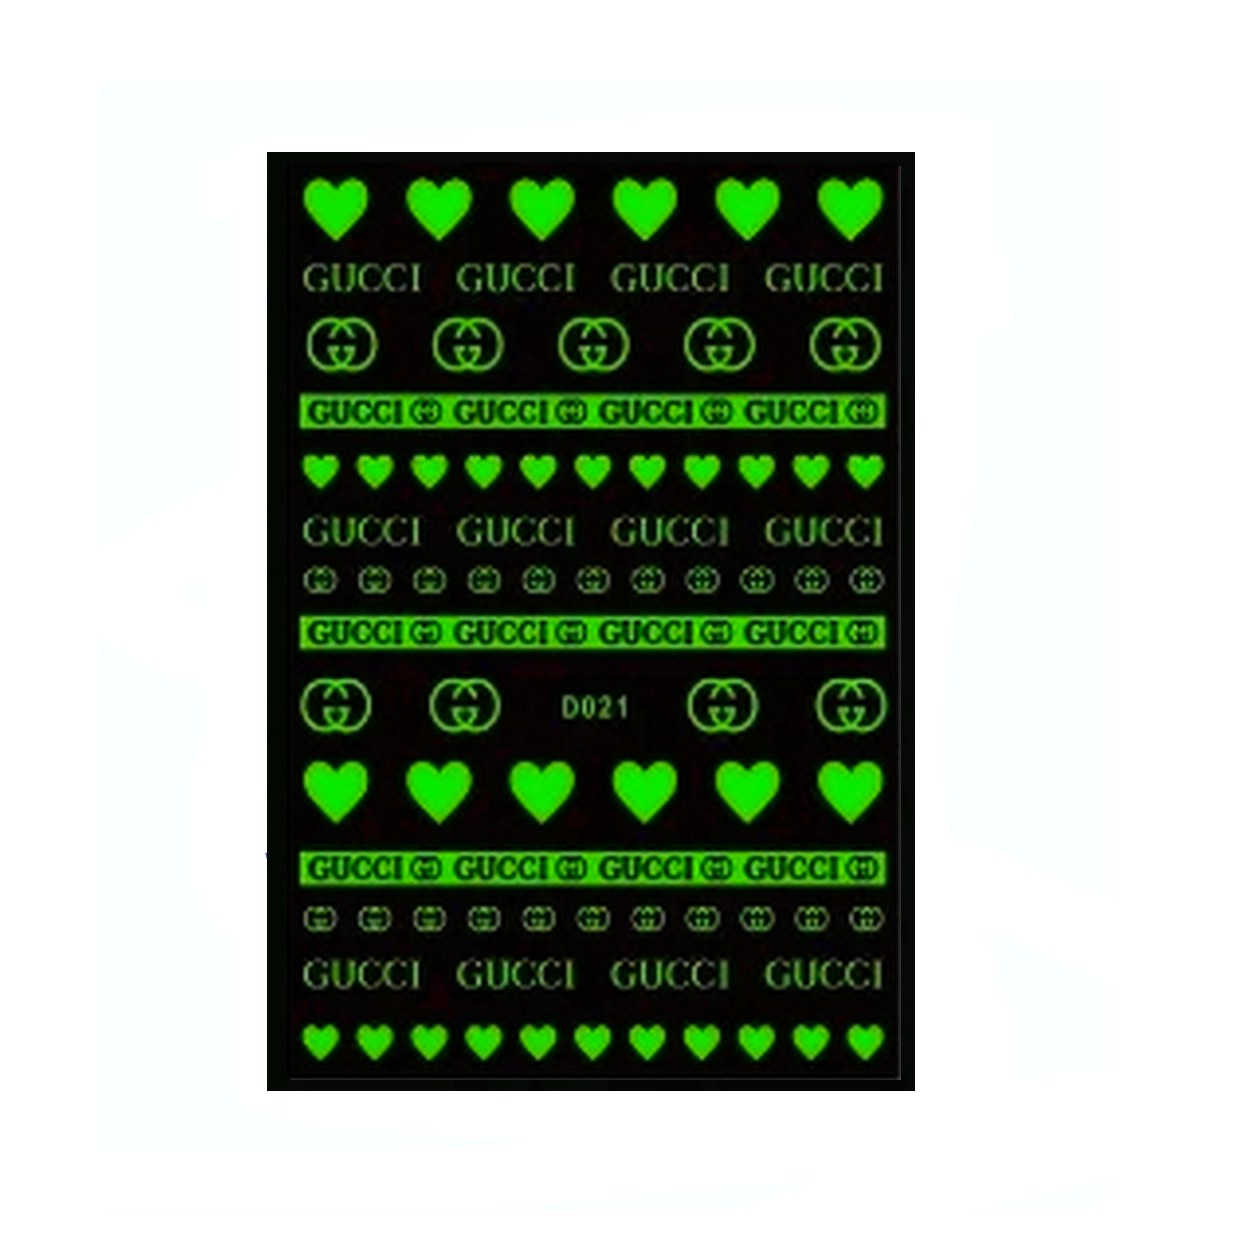 GG White/Glow in the Dark Nail Stickers